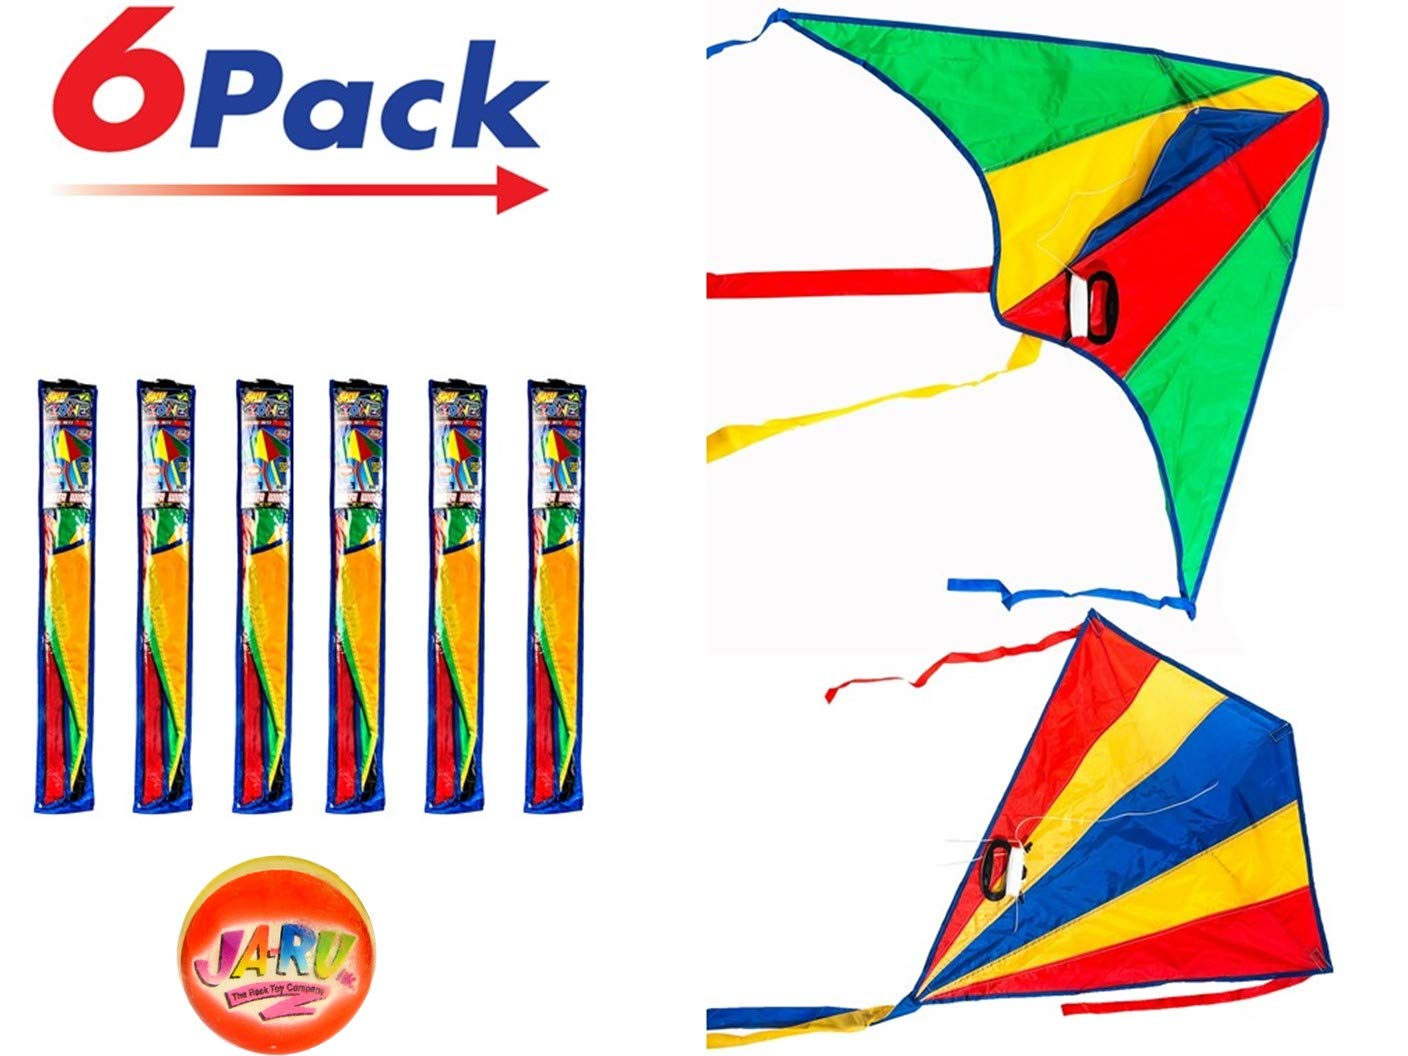 2CHILL Delta Kite Nylon Large in Bulk (Pack of 6) Made by JA-RU Plus 1 Bouncy Ball - Easy to Assemble, Launch, Fly - Premium Quality 9877-6p (Pack of 6 Kites) by 2CHILL